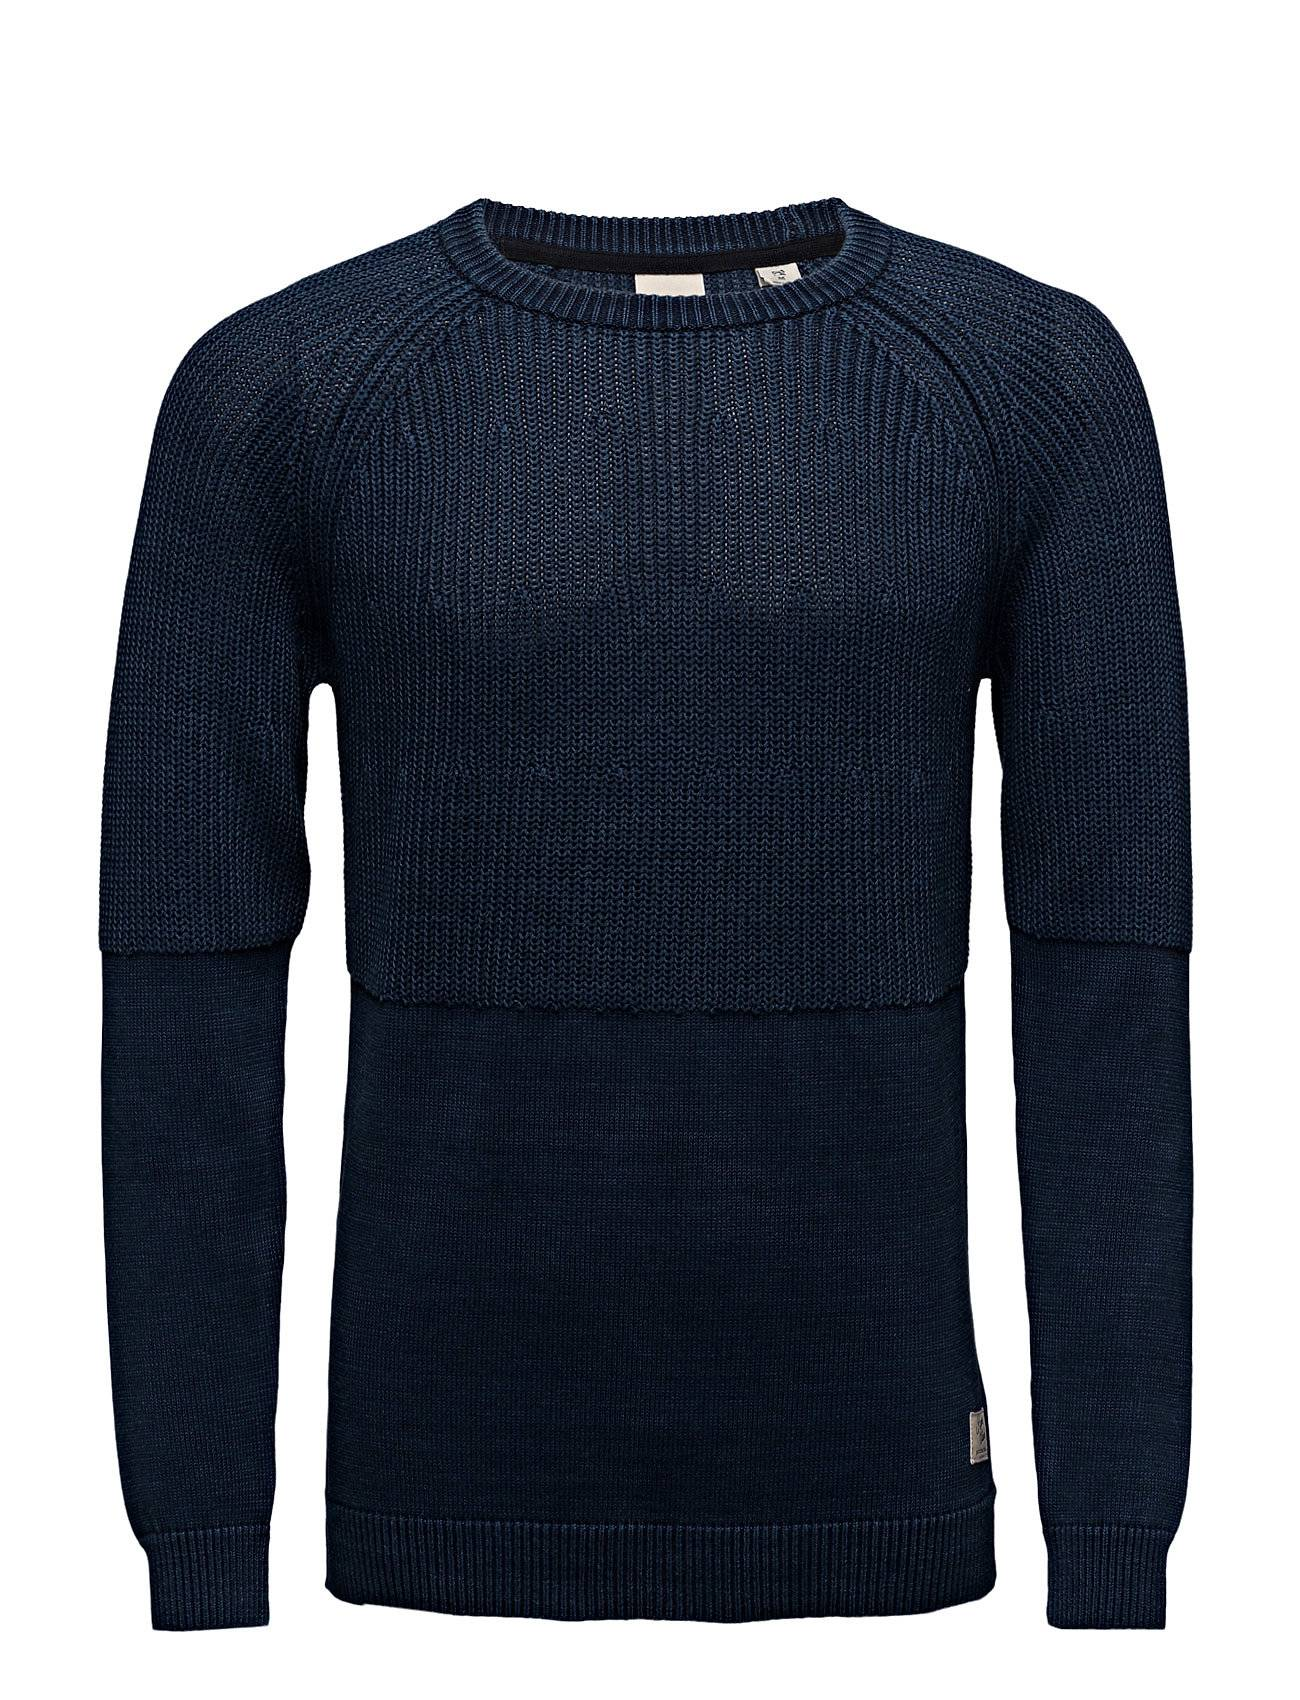 Scotch & Soda Home Alone Structured Crew Neck Knit